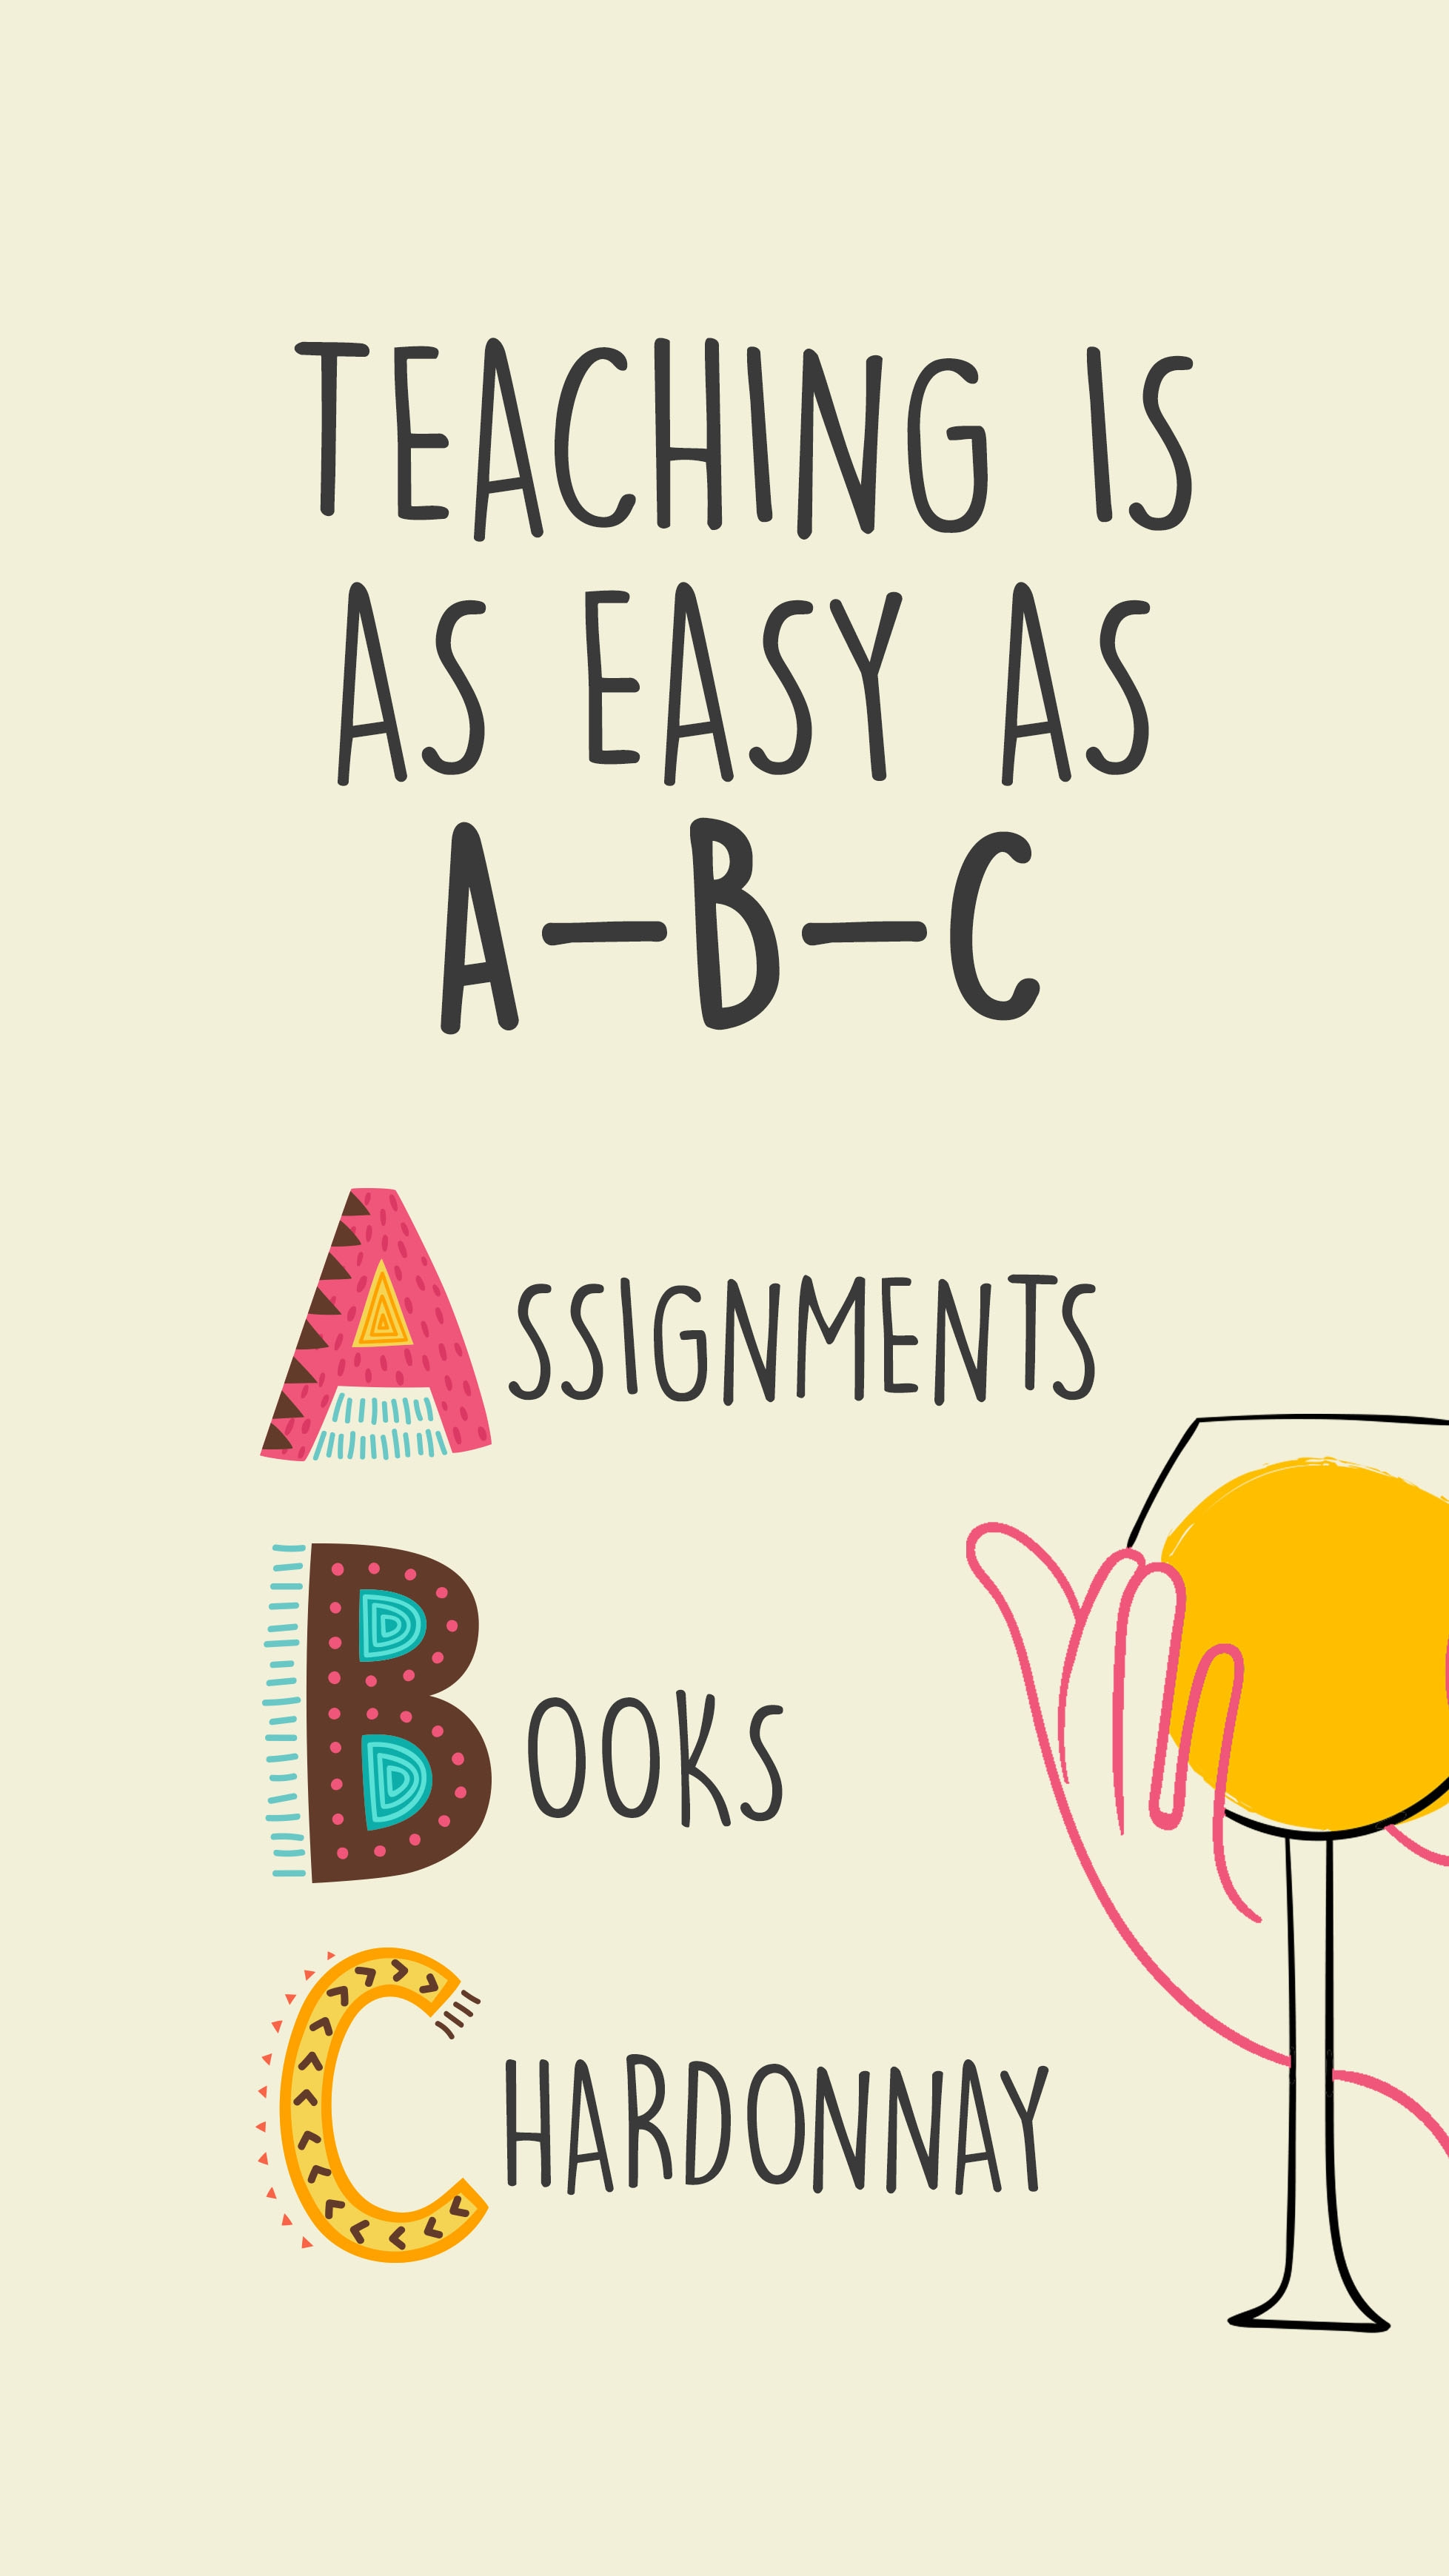 Easy as ABC